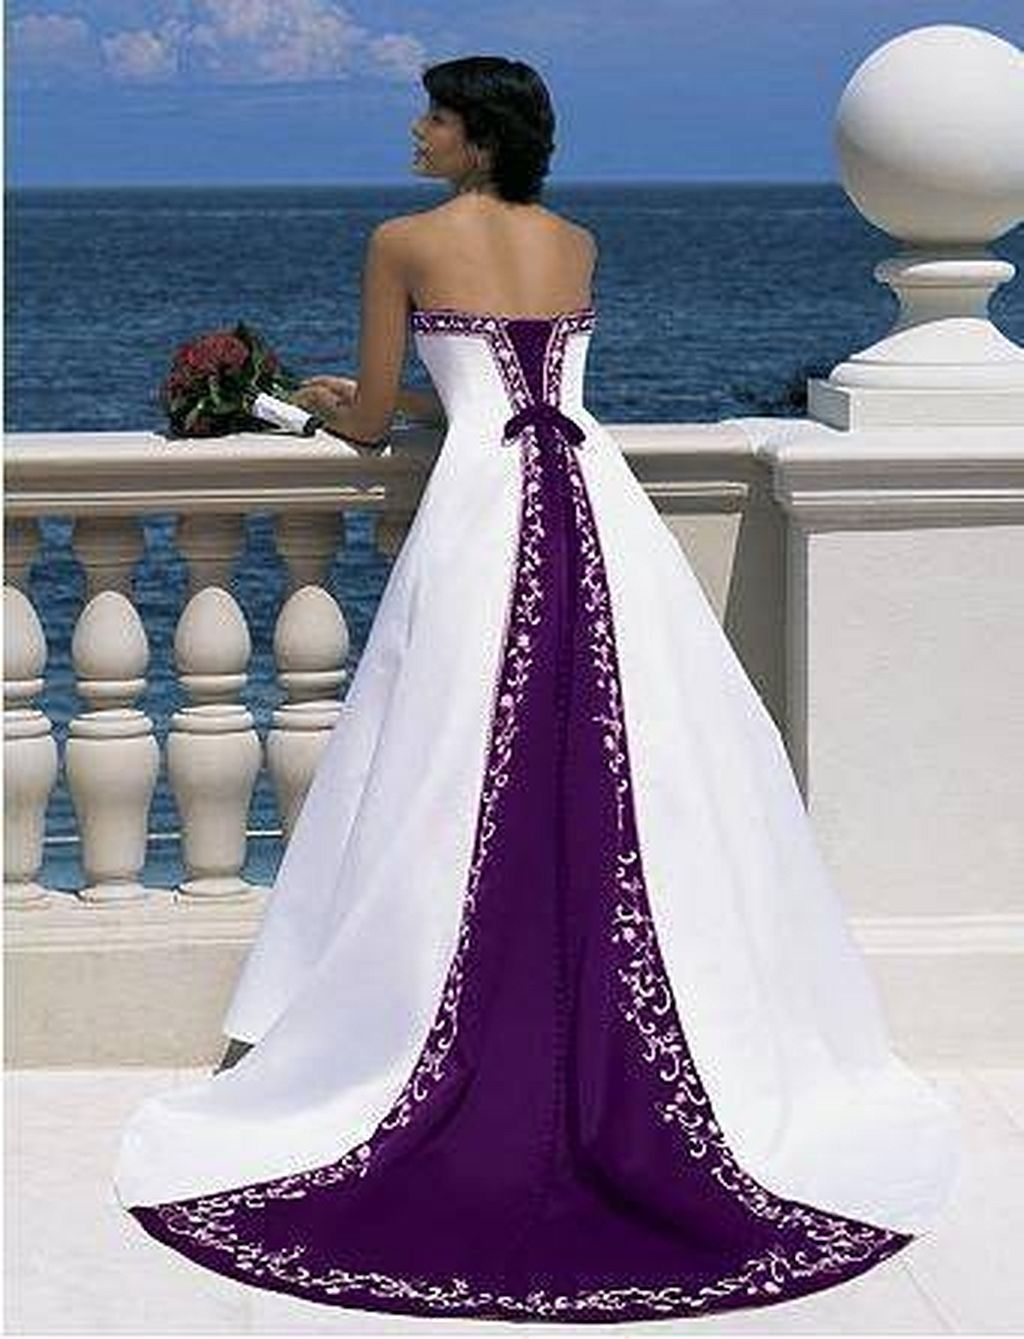 Tips For Looking Your Best On Your Wedding Day Luxebc Blue Wedding Dresses Angelo Wedding Dress Wedding Dress Styles [ 1339 x 1024 Pixel ]